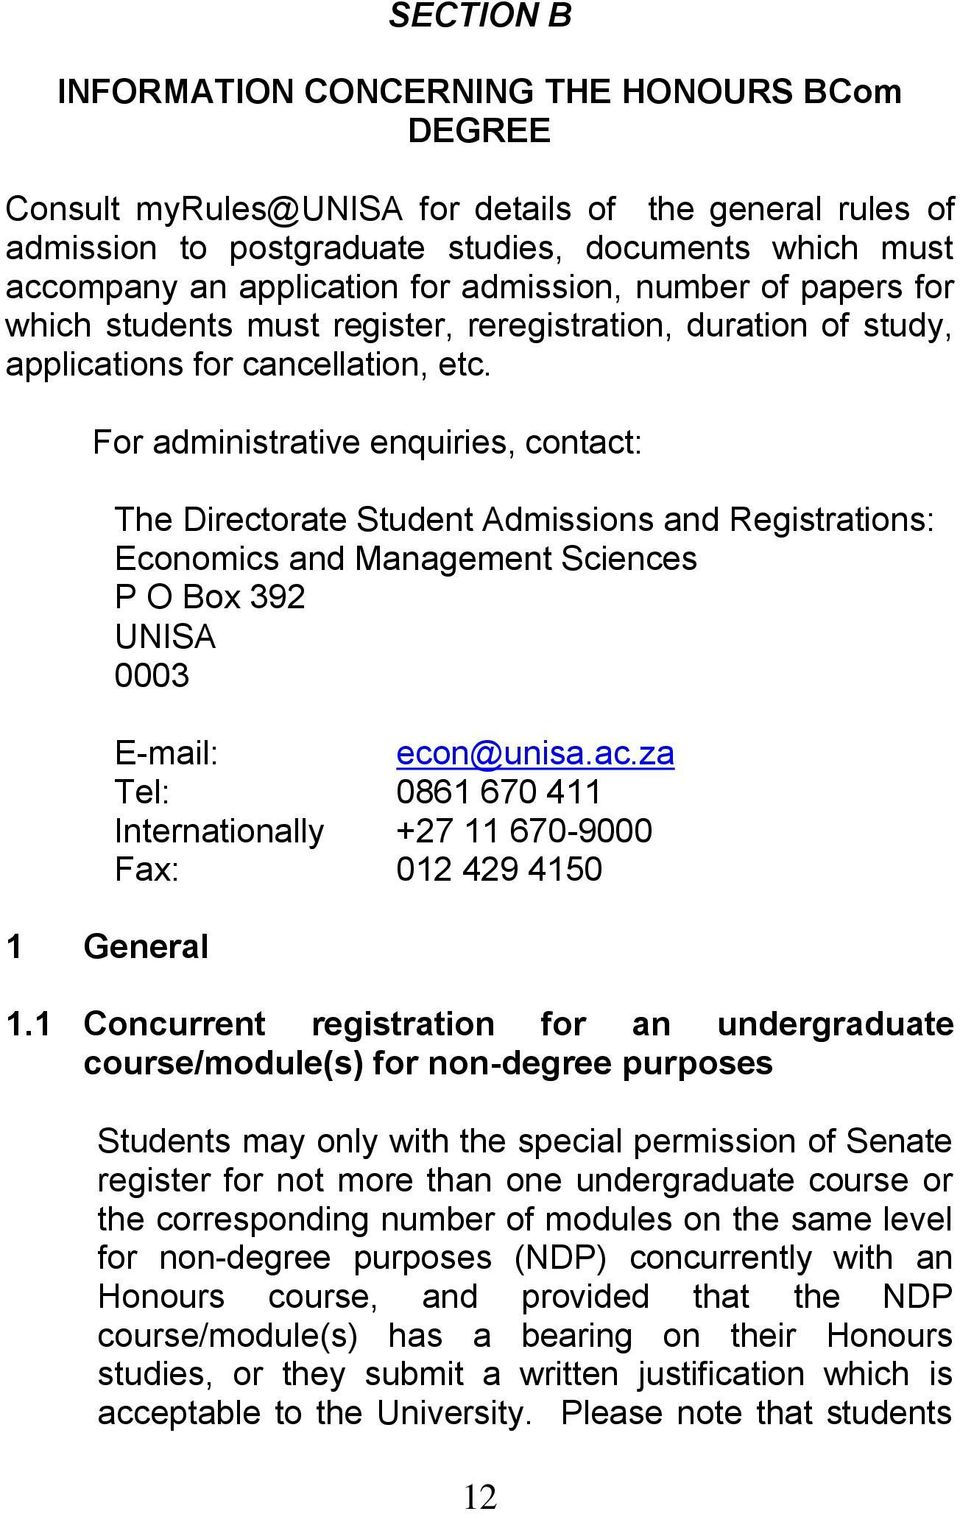 For administrative enquiries, contact: The Directorate Student Admissions and Registrations: Economics and Management Sciences P O Box 392 UNISA 0003 E-mail: econ@unisa.ac.za Tel: 0861 670 411 Internationally +27 11 670-9000 Fax: 012 429 4150 1 General 1.